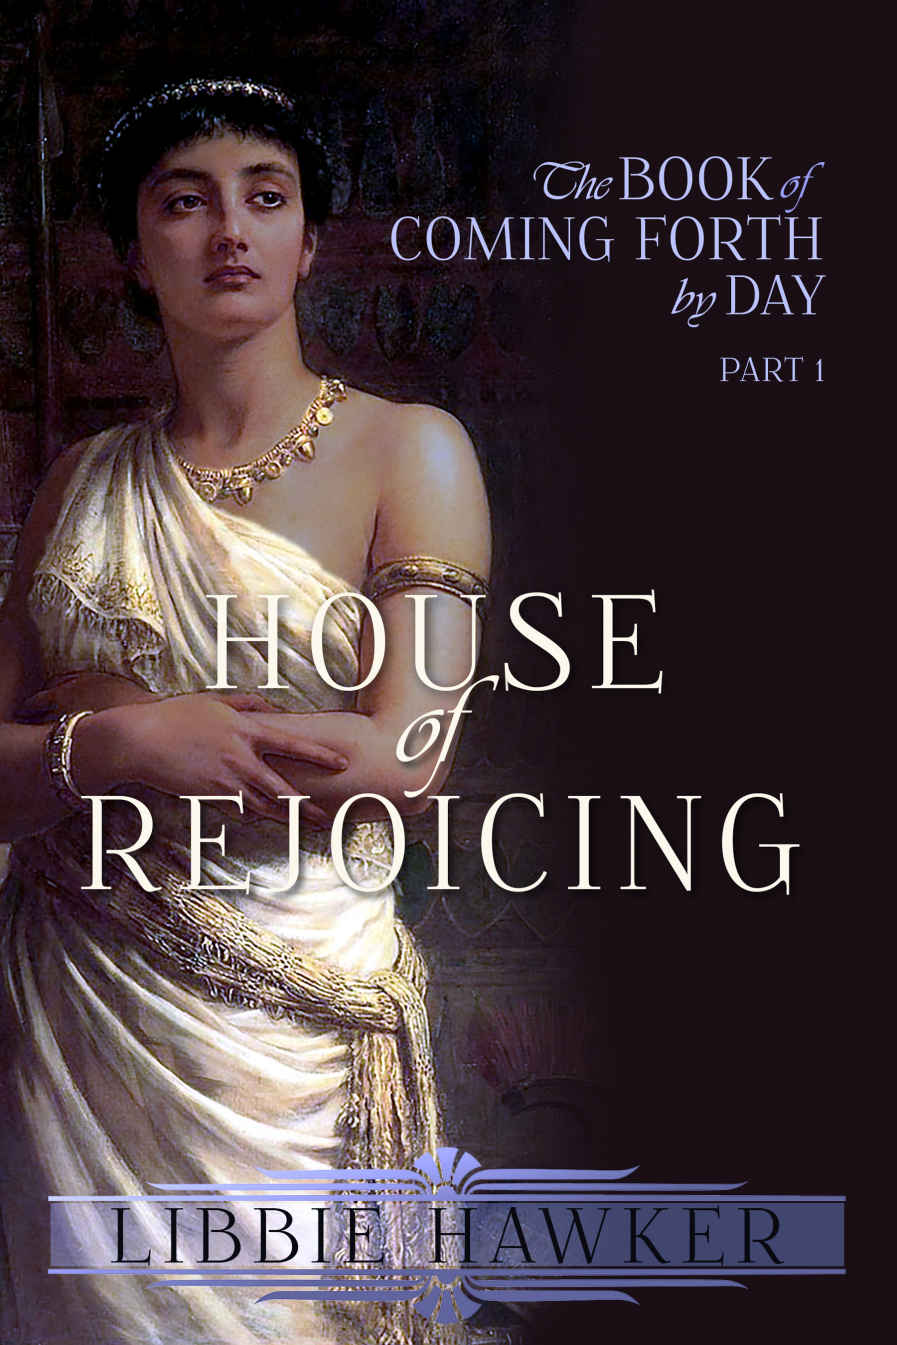 Cover image for House of Rejoicing: Part 1 of Theof Coming Forth by Day